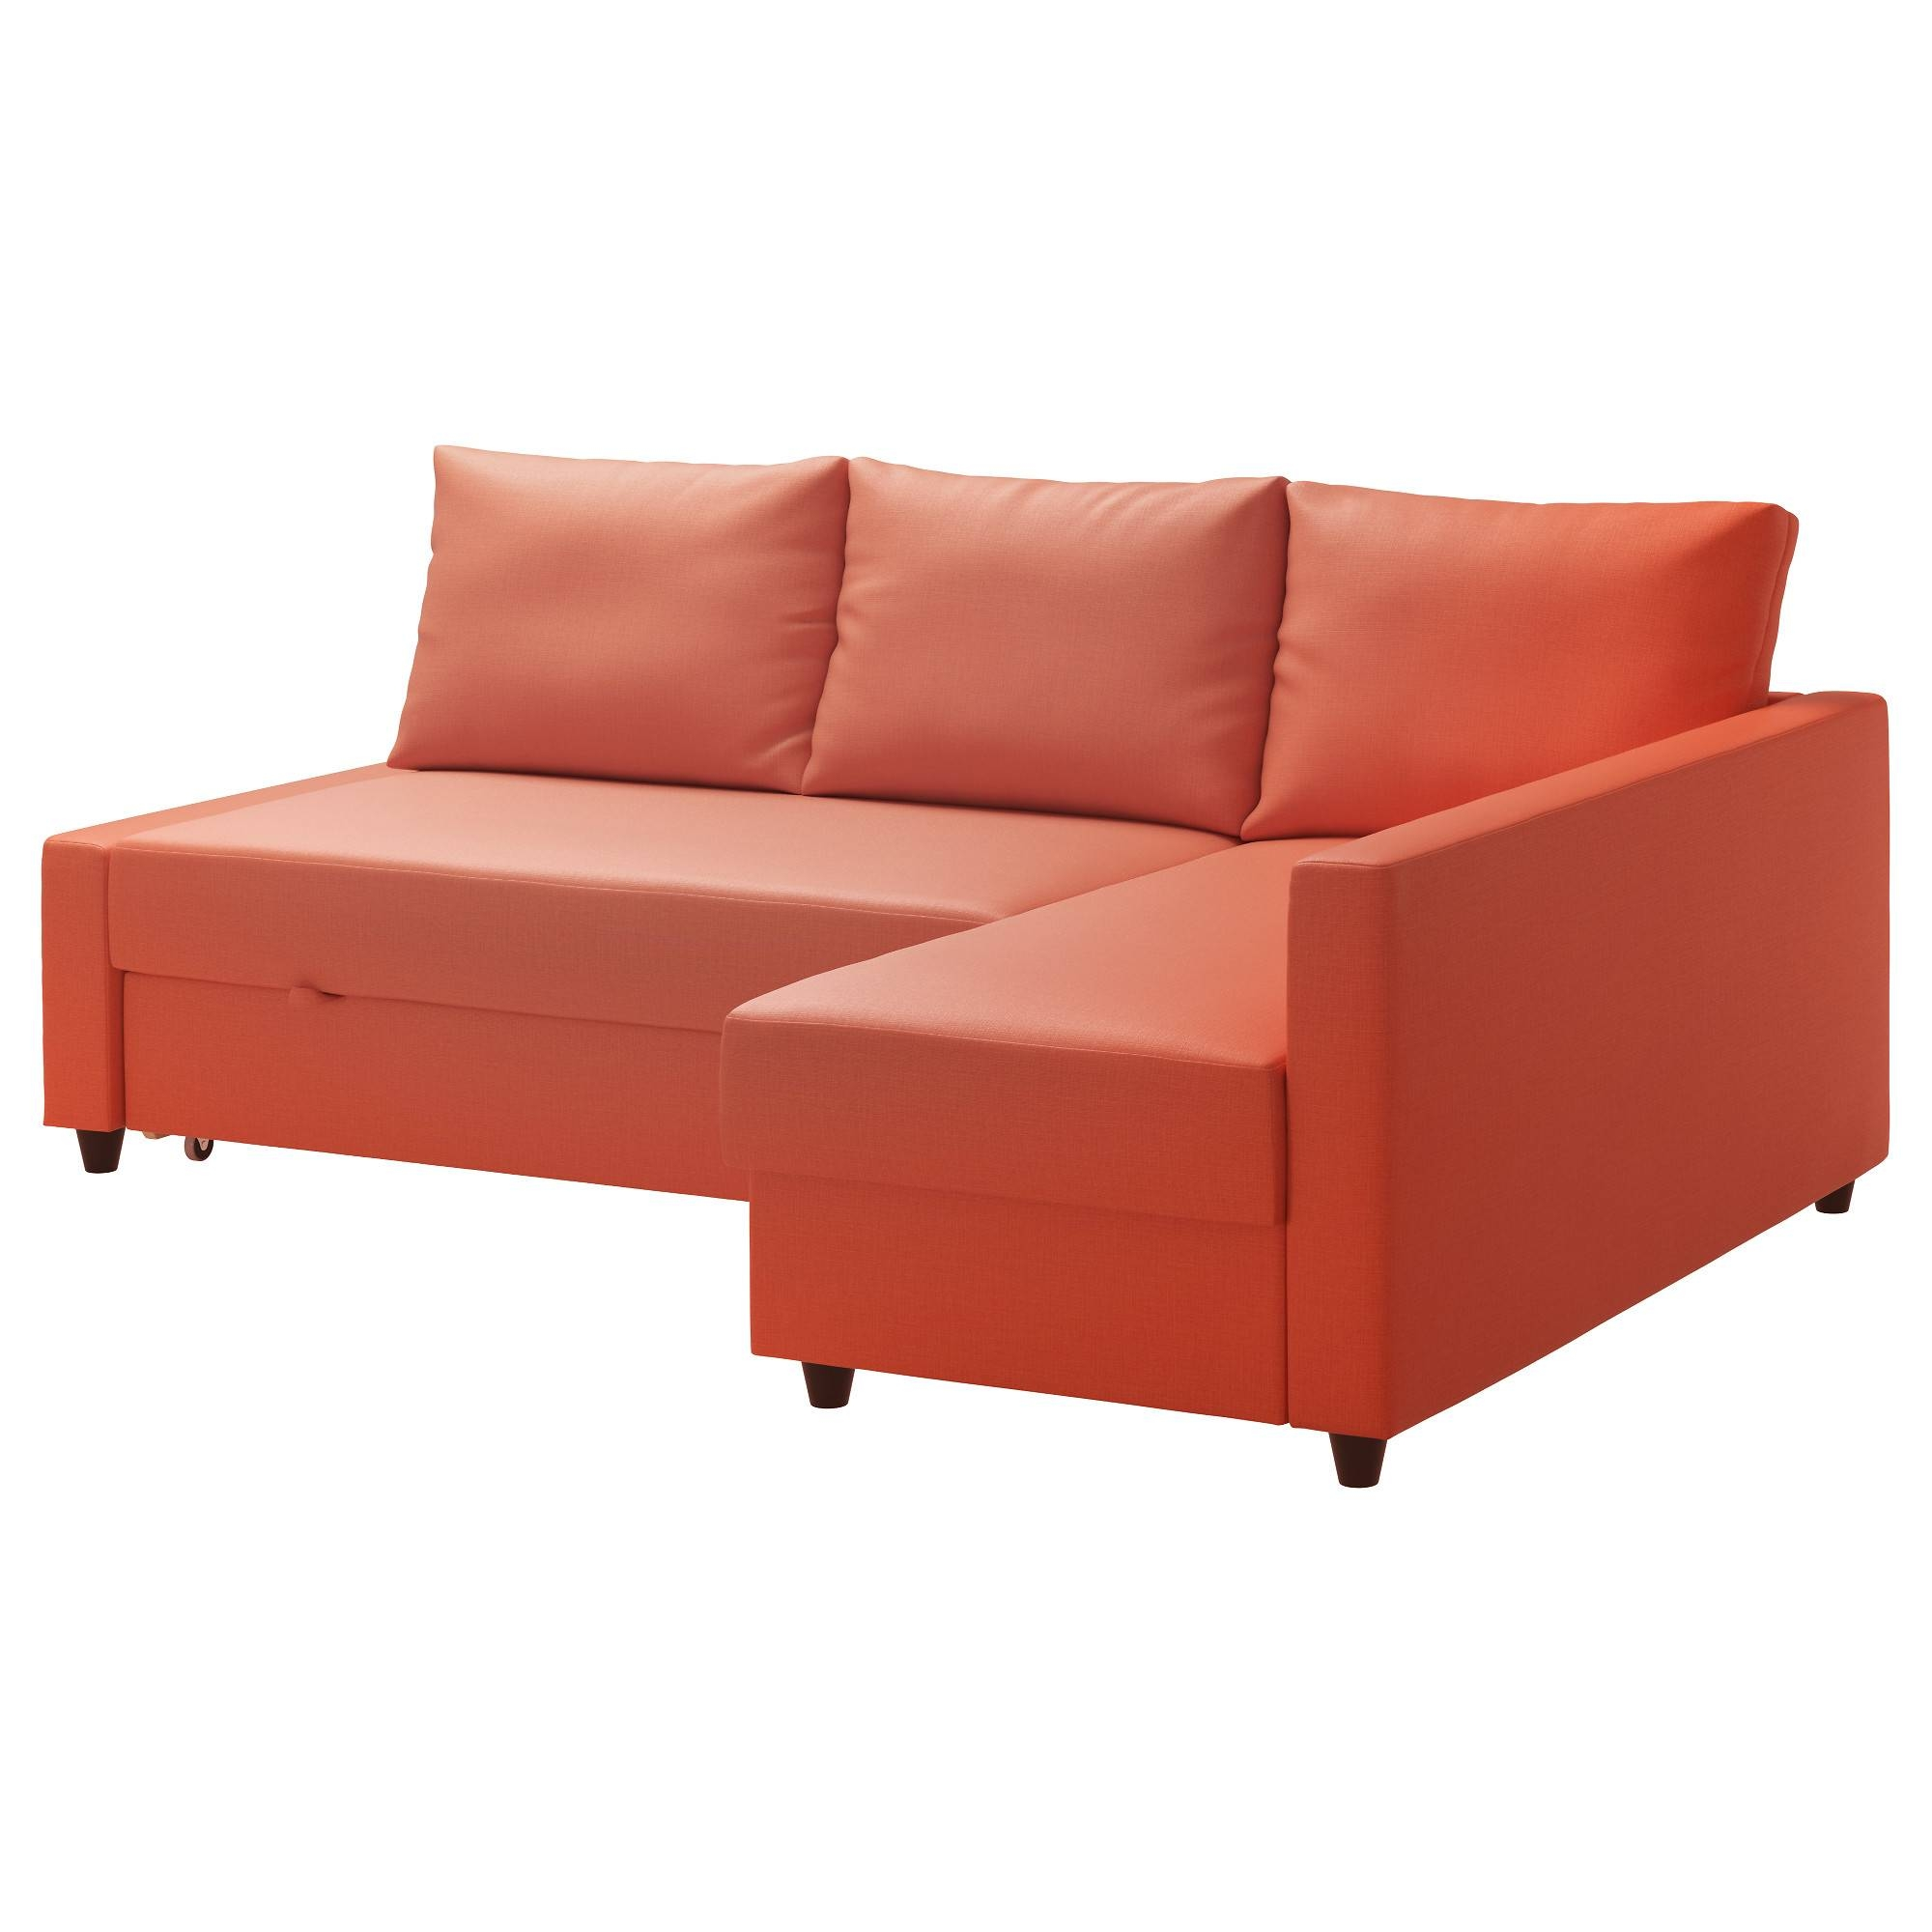 2017 Latest Red Sofa Beds Ikea